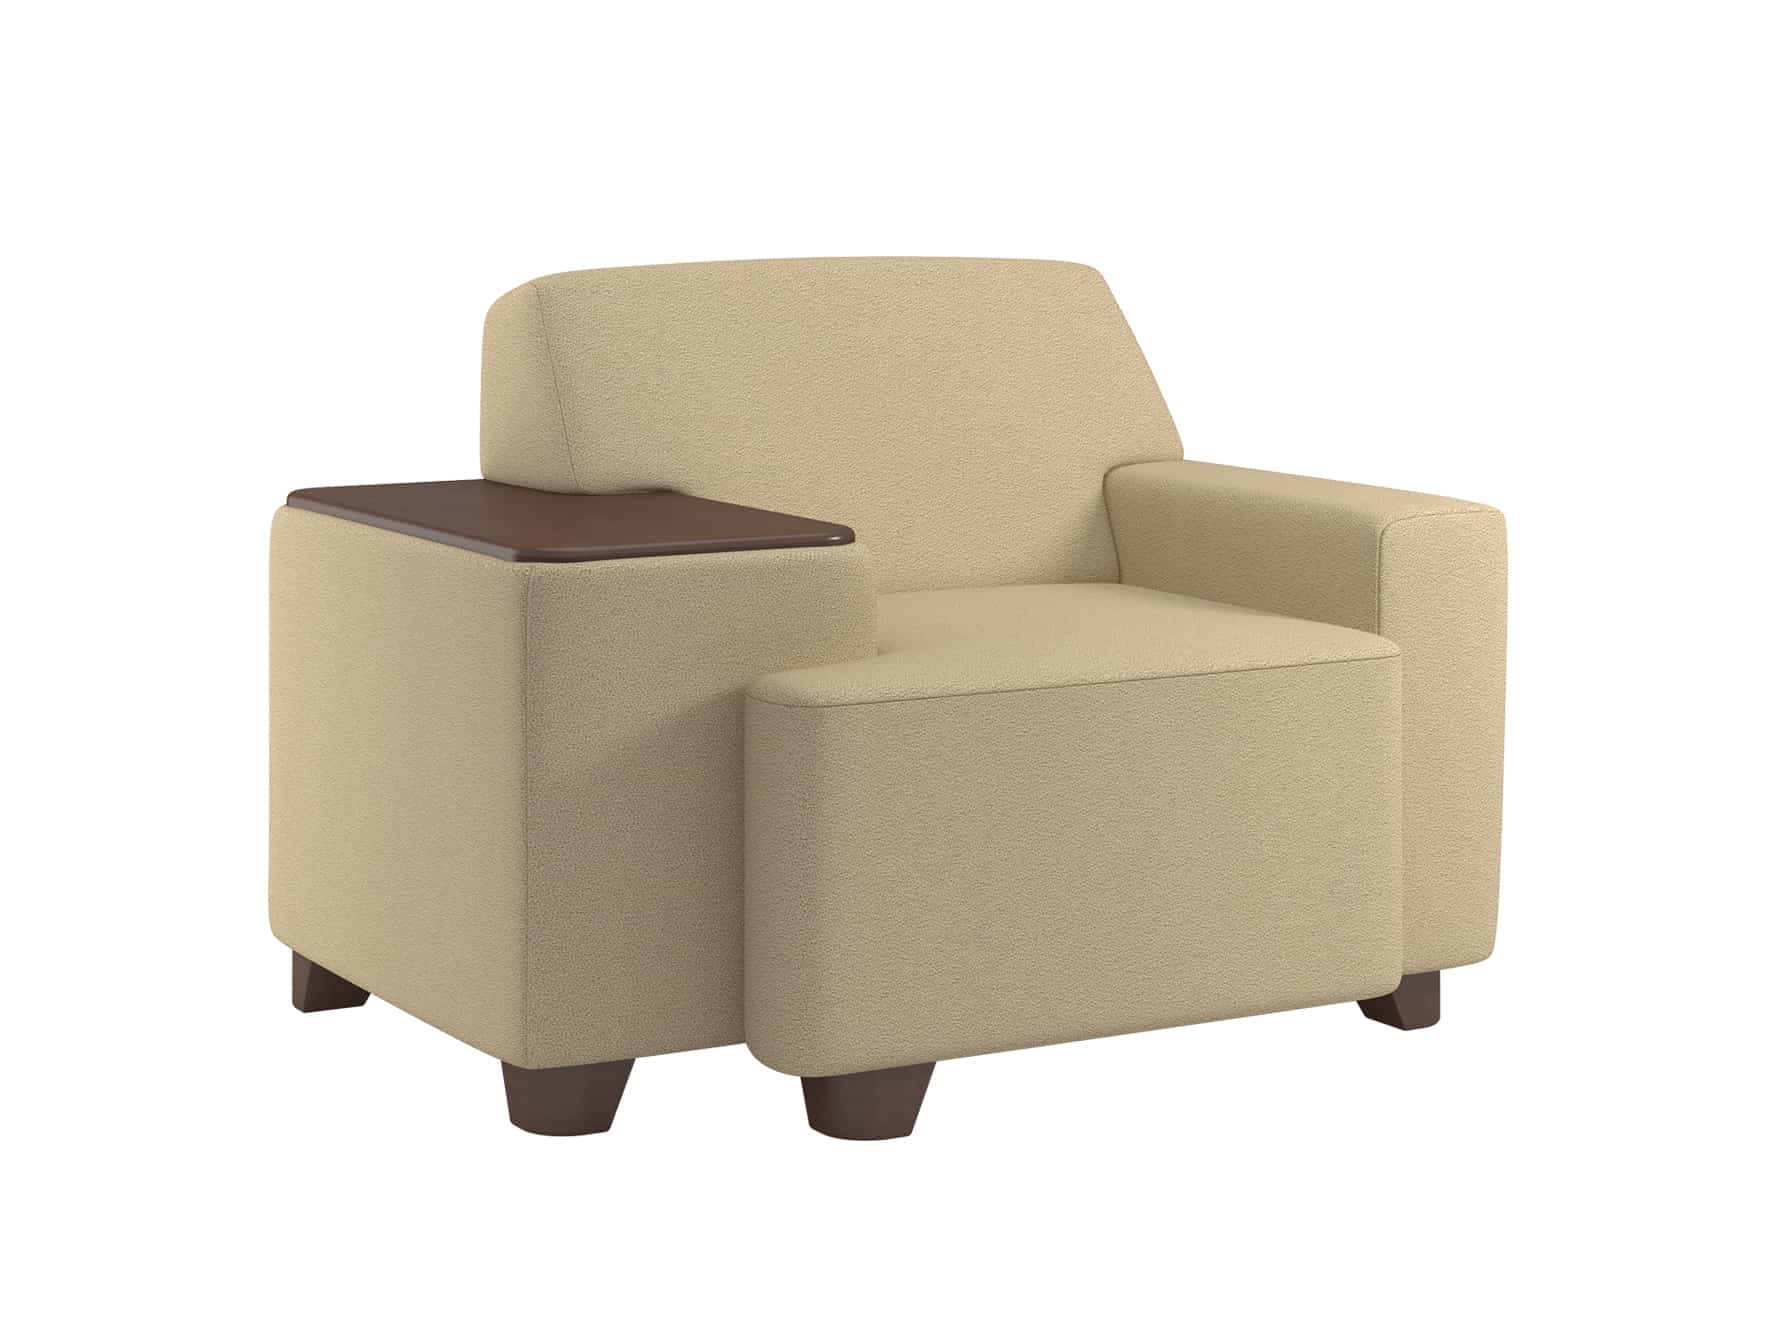 lobby sofa crossword bristol city nottingham forest sofascore puzzle chair with table arm and upholstered sauder